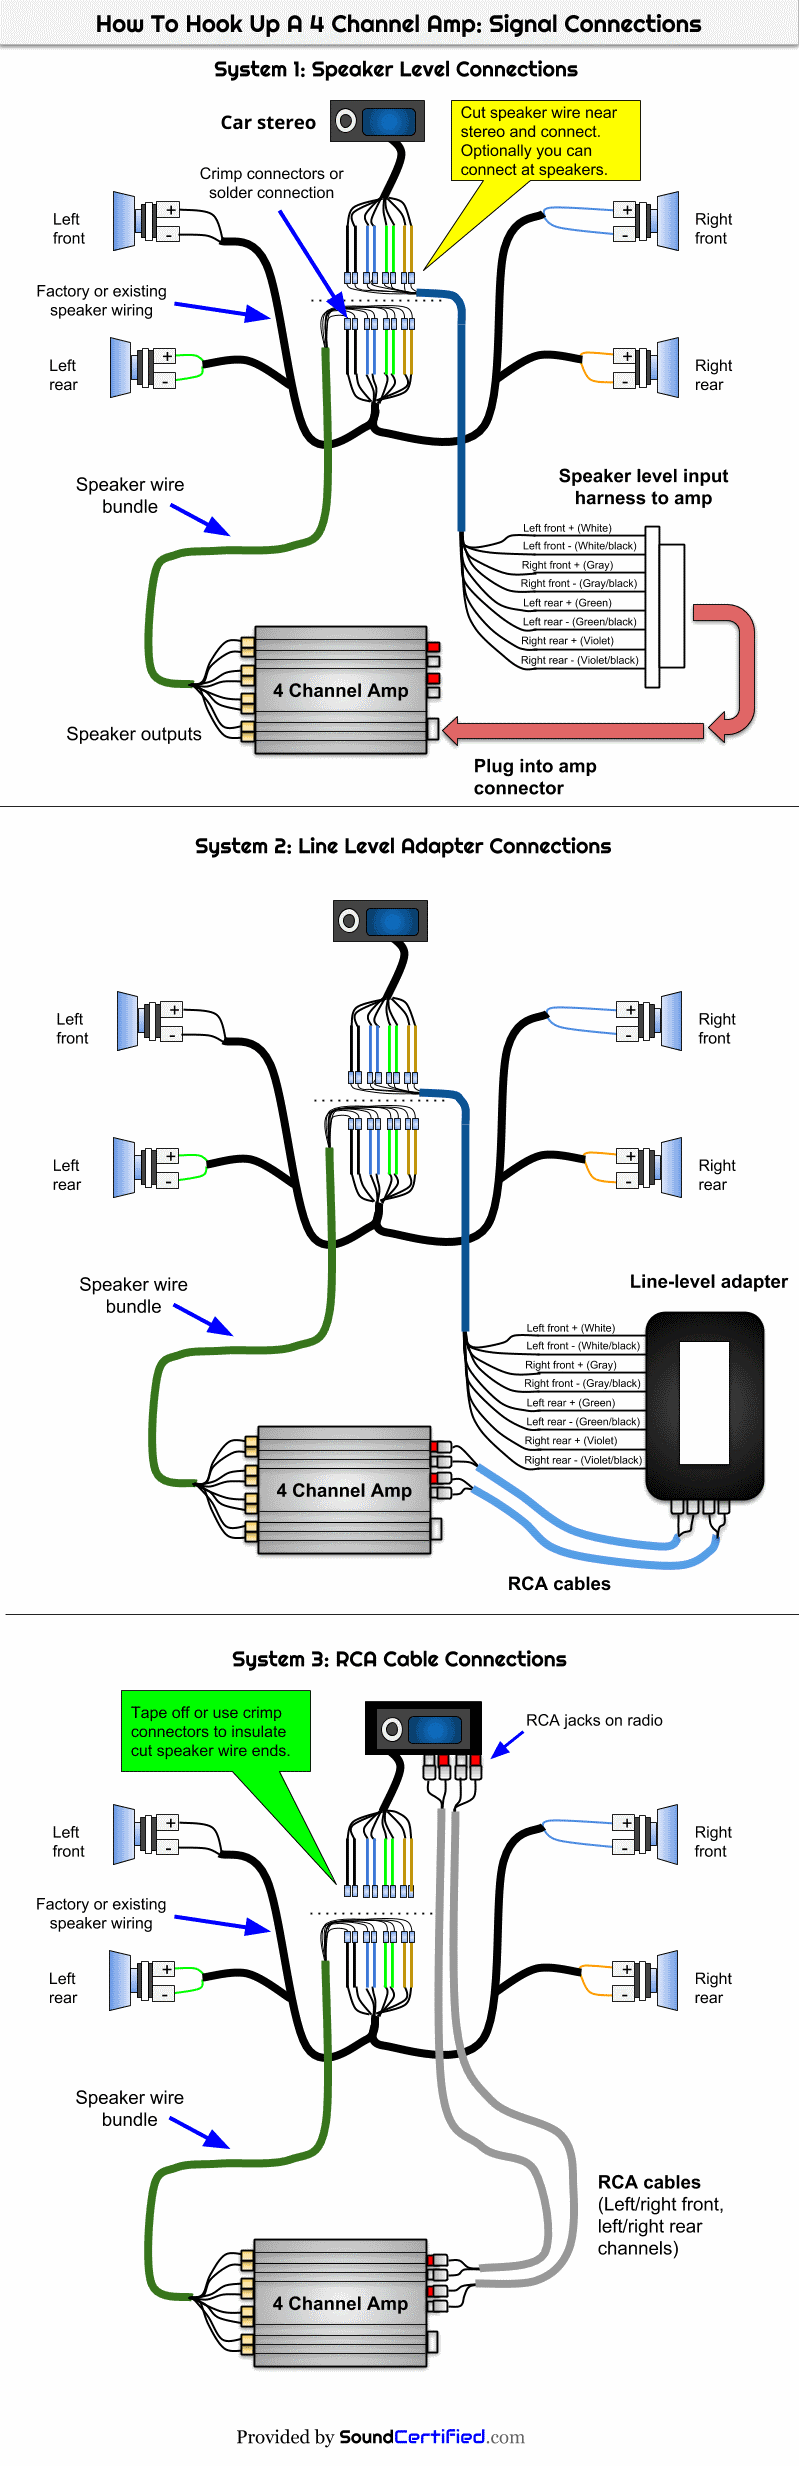 How To Hook Up A 4 Channel Amp Front And Rear Speakers My Volt Meter Here Is The Wiring Diagram For Signal Connection